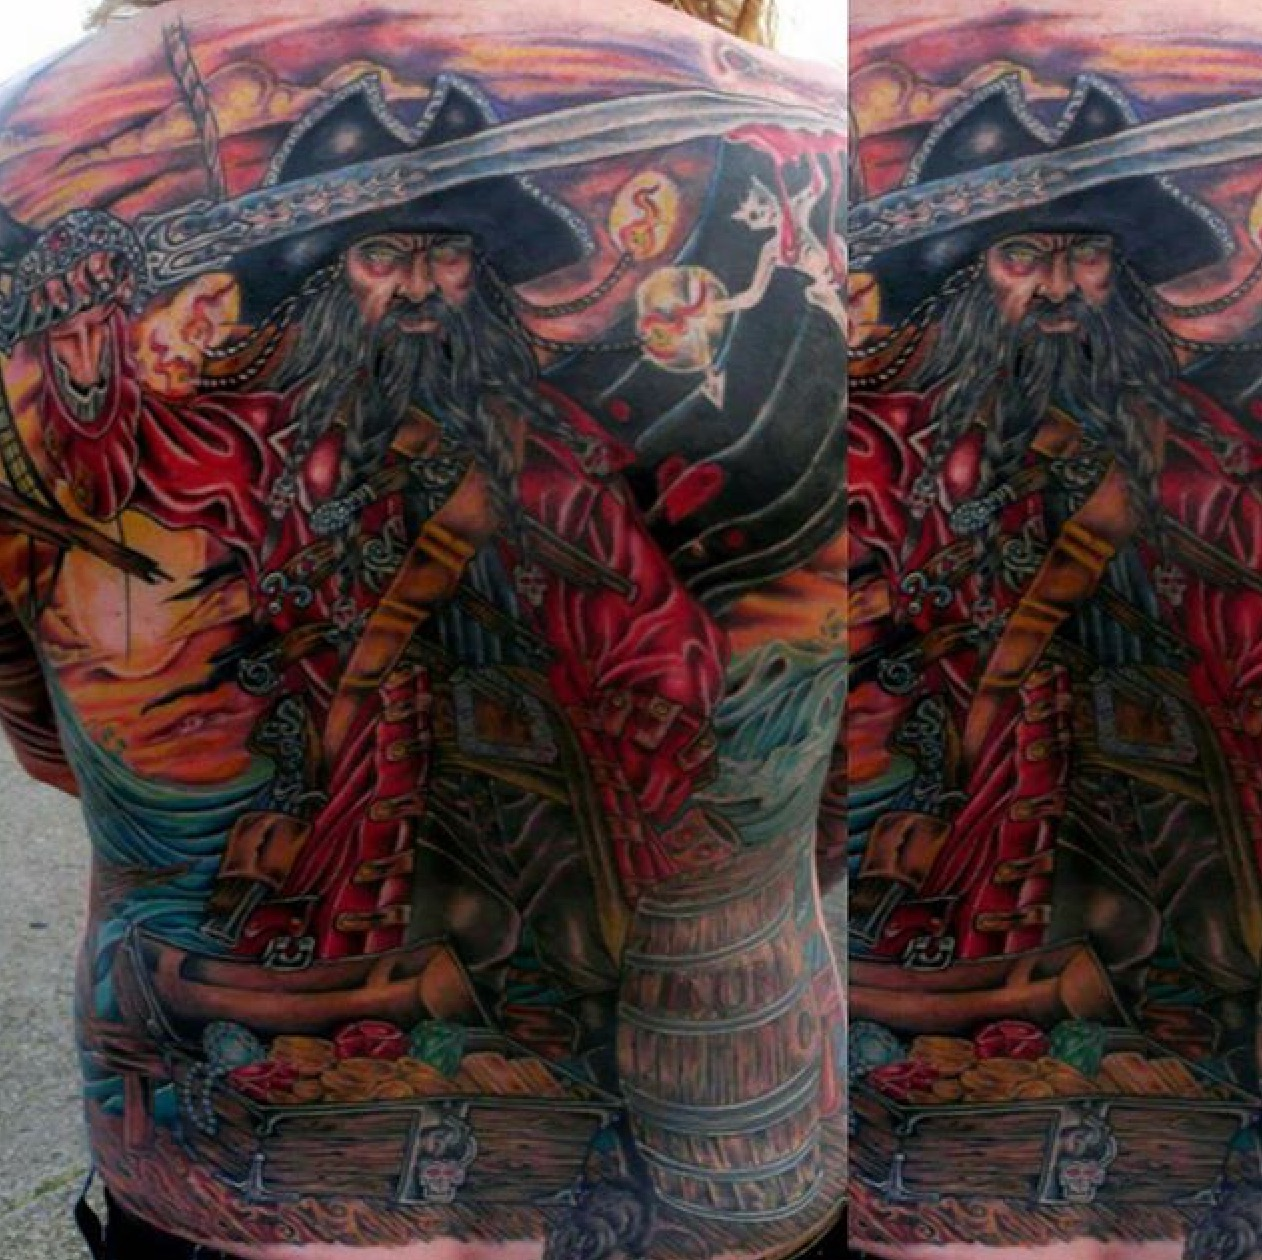 Charlotte nc tattoo artist shade carpenter for Tattoos in charlotte nc